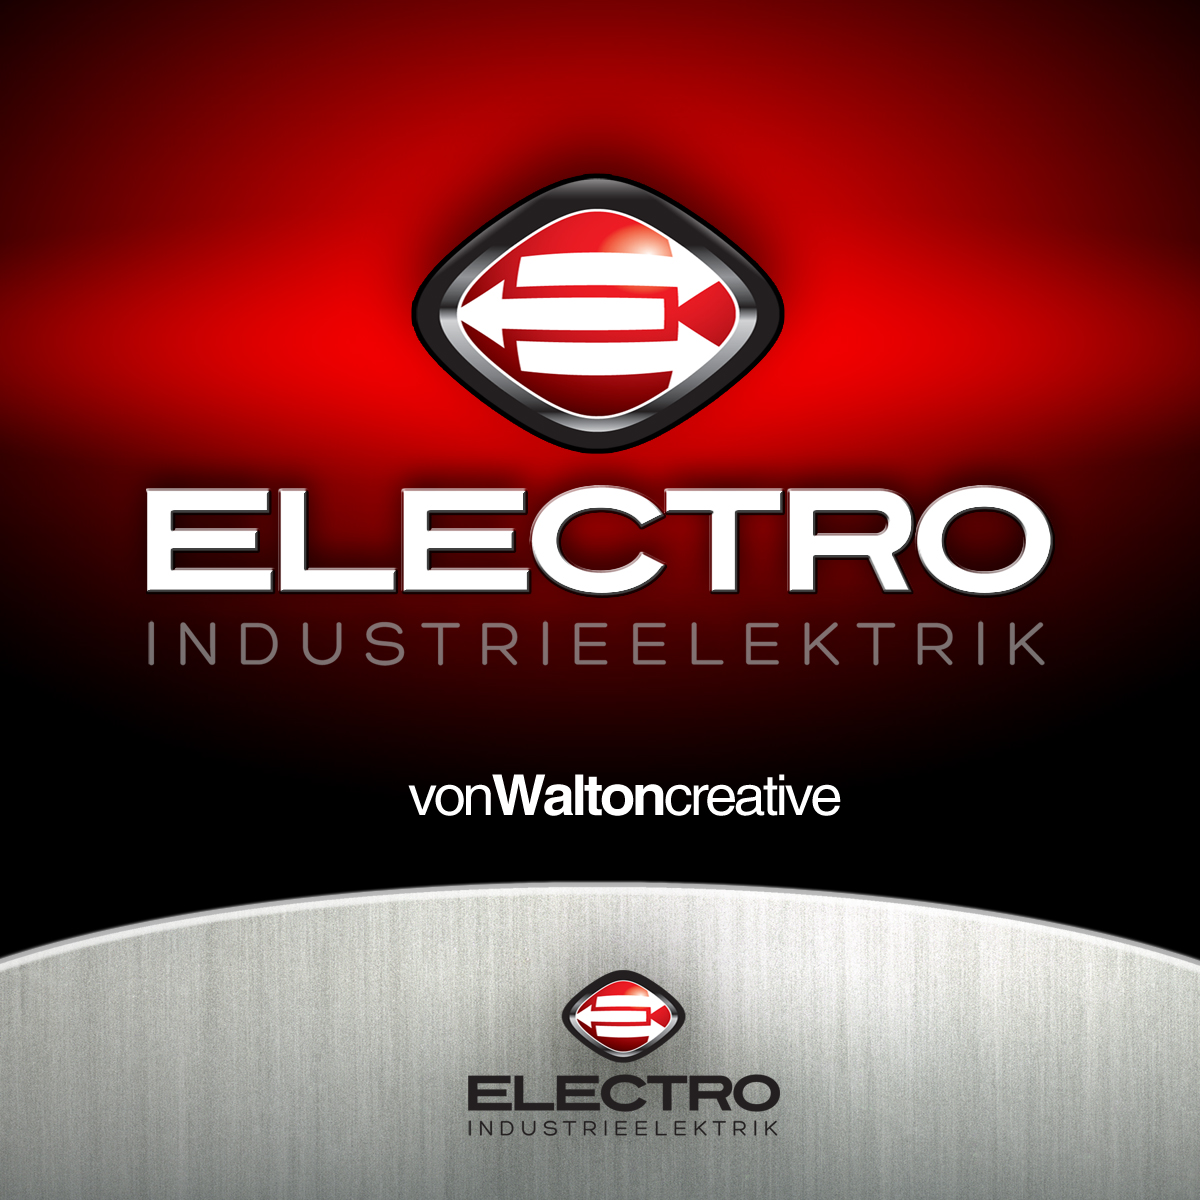 Logo Design by vonwalton - Entry No. 59 in the Logo Design Contest Unique Logo Design Wanted for Electro Industrieelektrik.